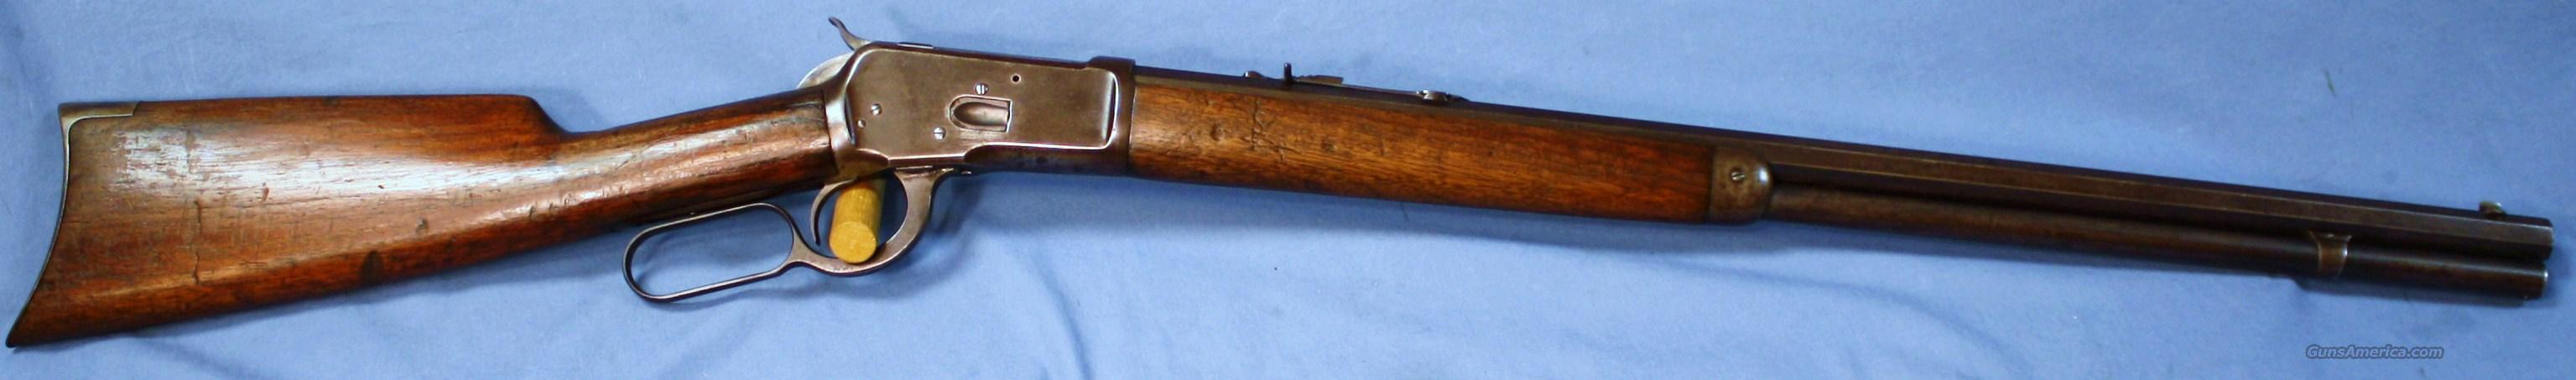 Winchester Model 1892 Lever Action Rifle 38 WCF   Guns > Rifles > Winchester Rifles - Modern Lever > Other Lever > Pre-64